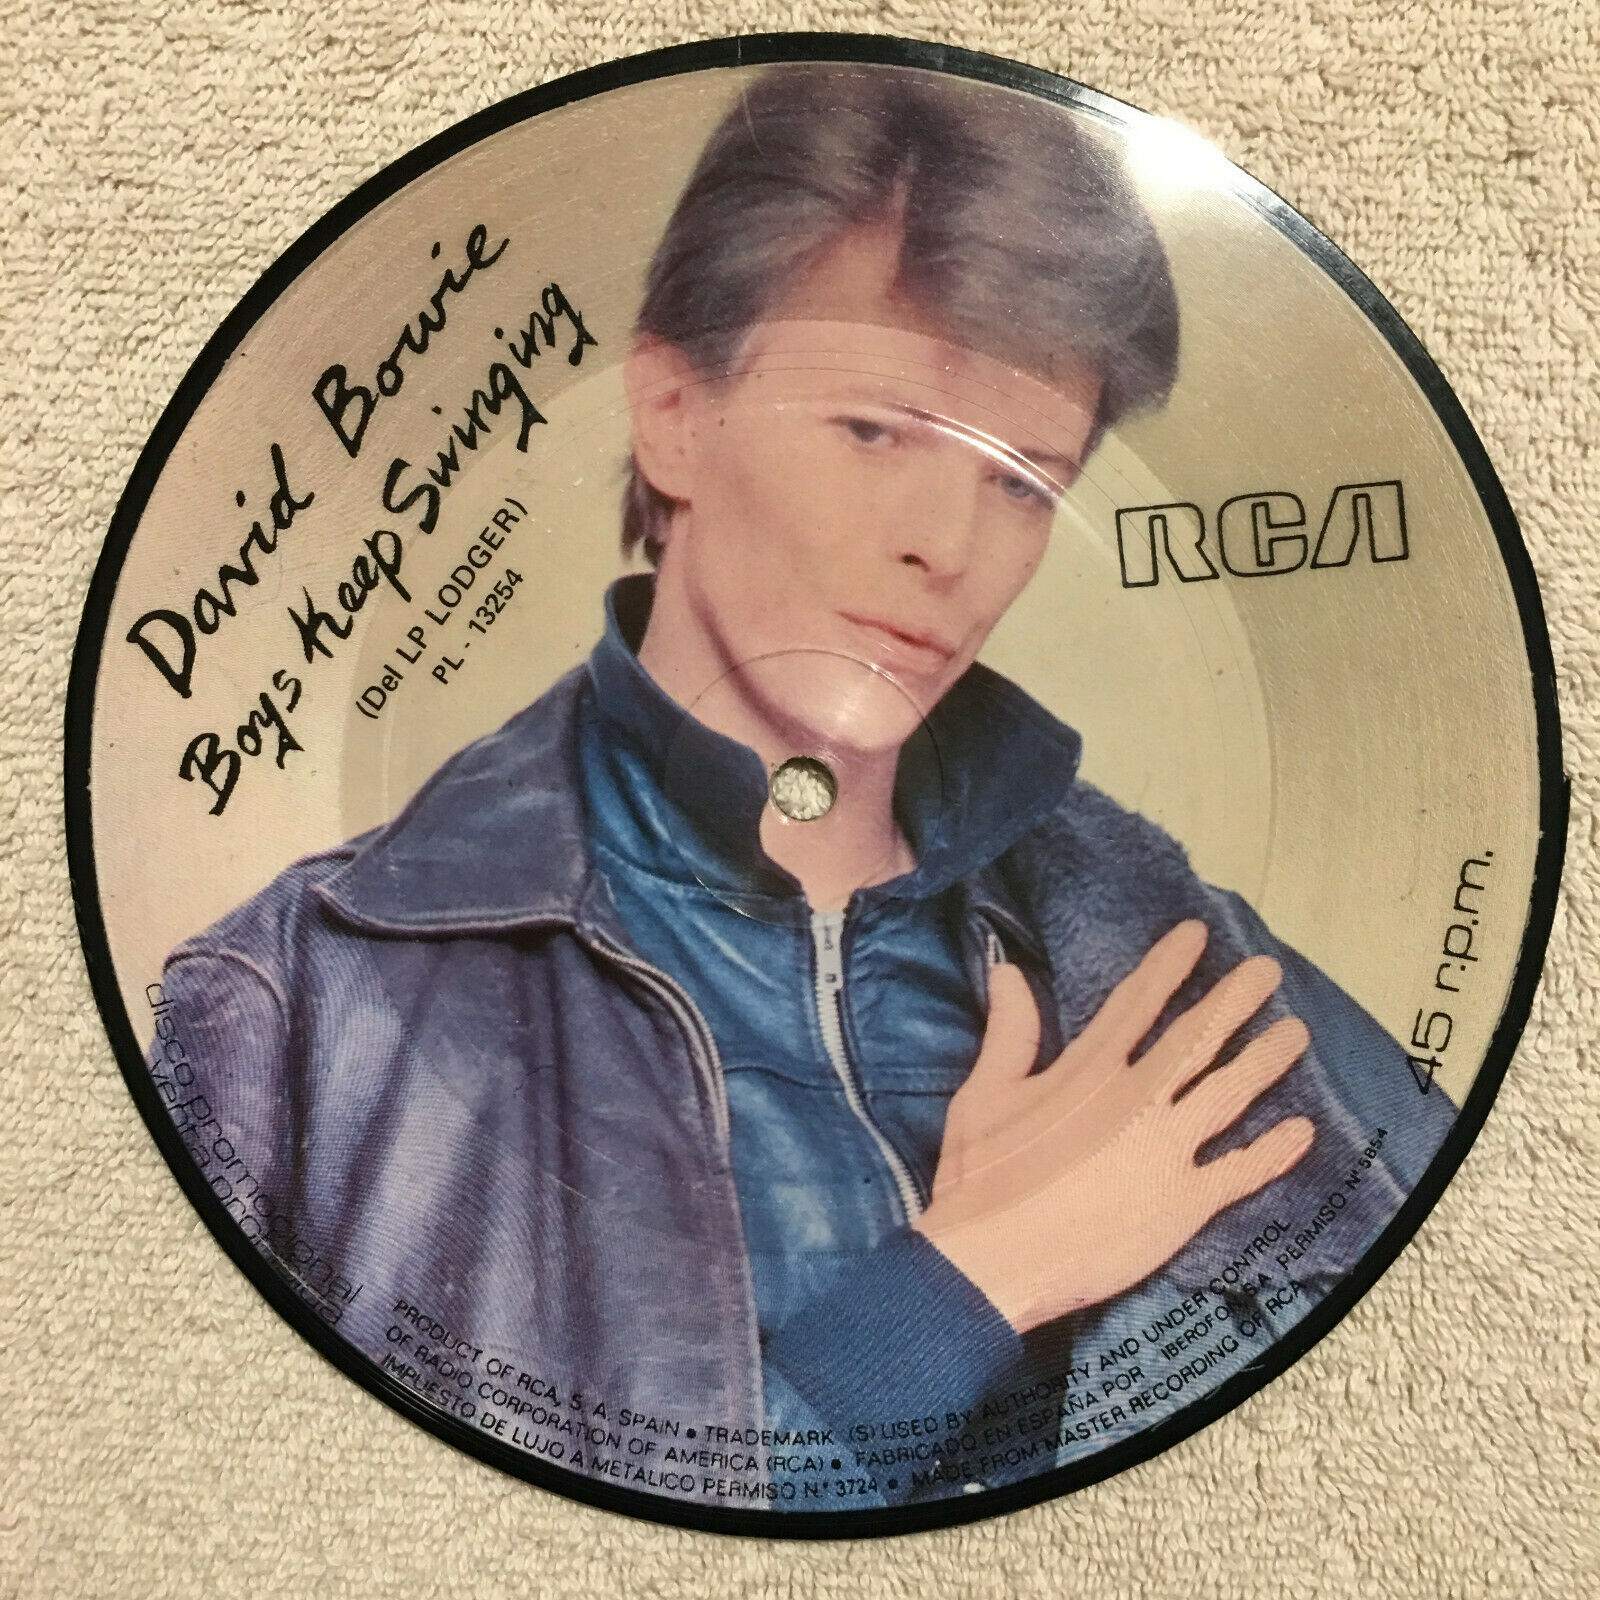 DAVID BOWIE - Boys Keep Swinging - Spain picture disc - NM/NM